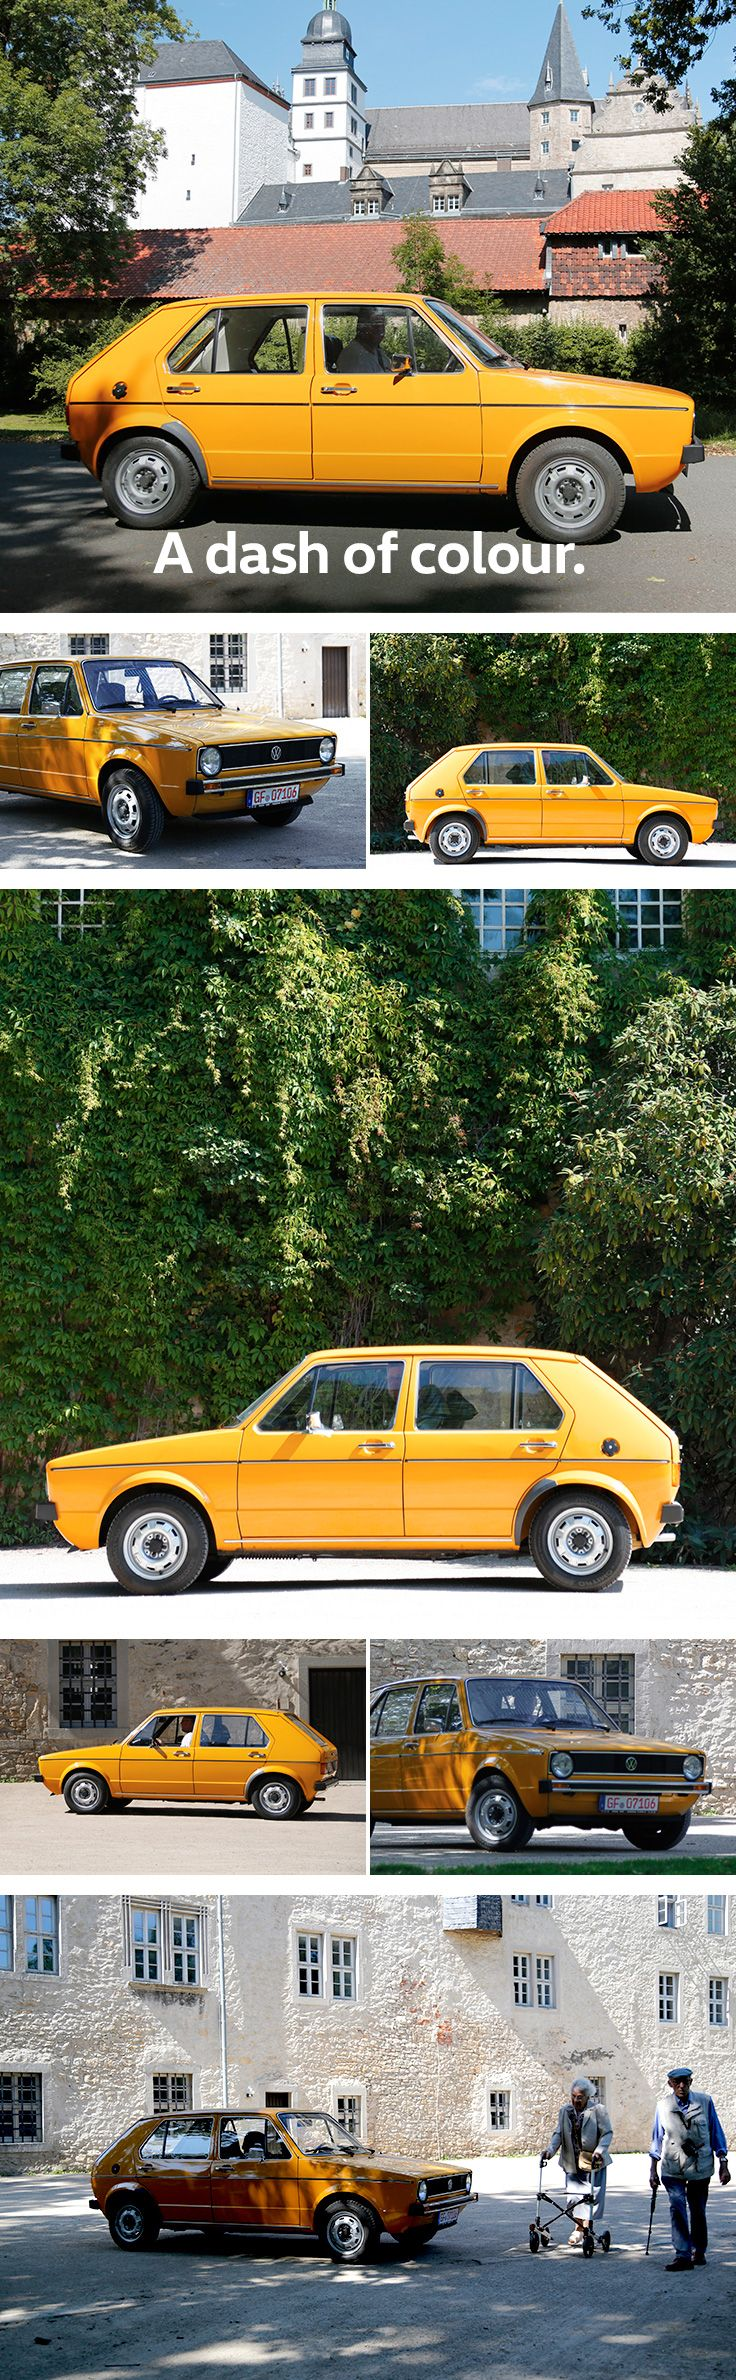 Looking good from every angle: the Golf I looks fresh and bright with its original yellow paint. A day on the road provides picturesque backdrops that make for a great contrast to the vibrant colour and edged frame of this Volkswagen classic car.